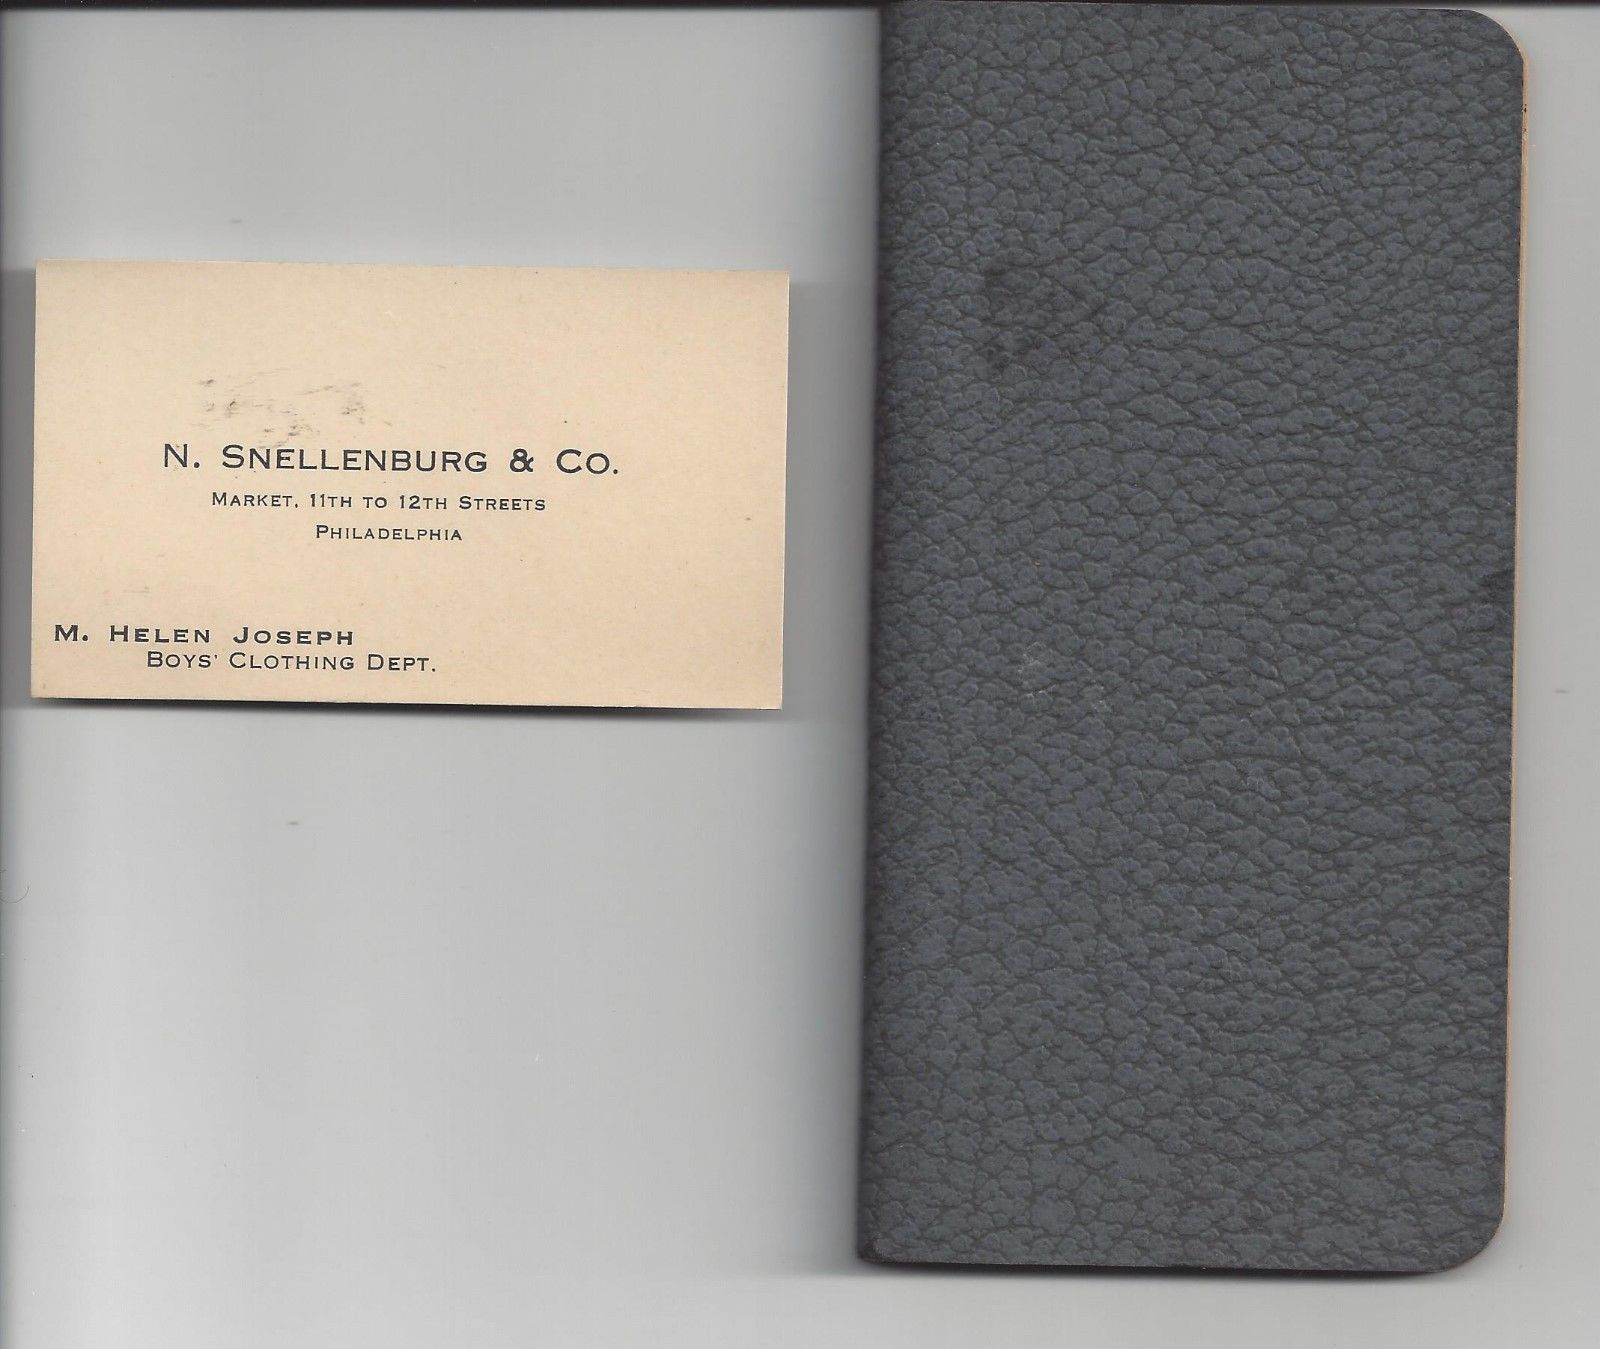 Old notebook business card n snellenburg co mens clothing store old notebook business card n snellenburg co mens clothing store philadelphia ebay reheart Image collections